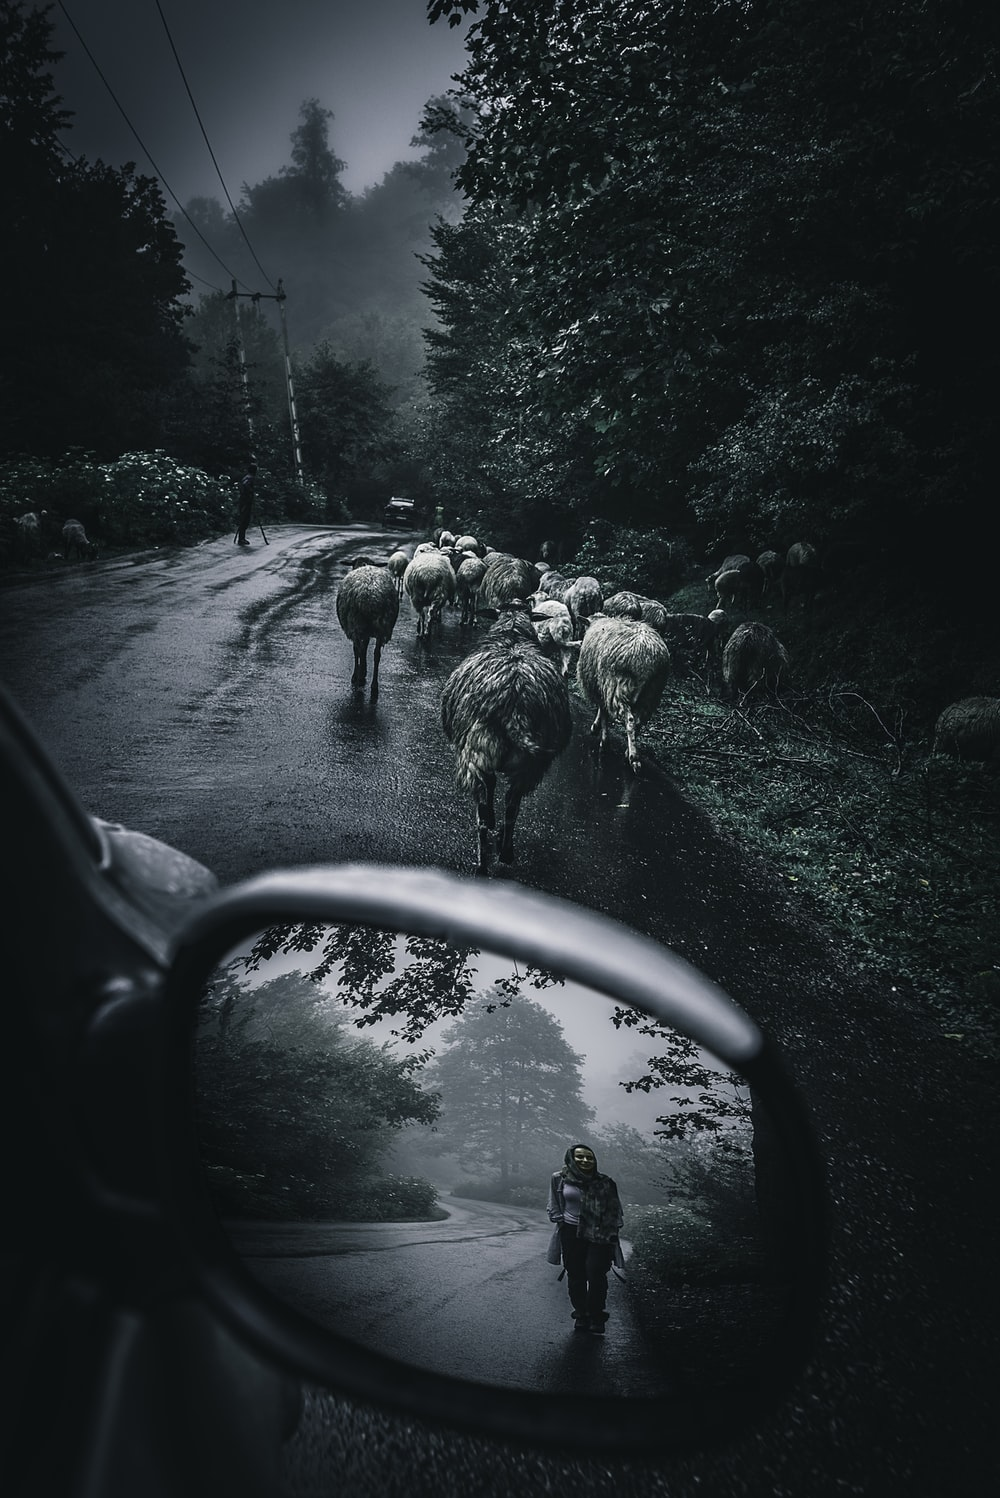 grayscale photo of sheep on road during daytime